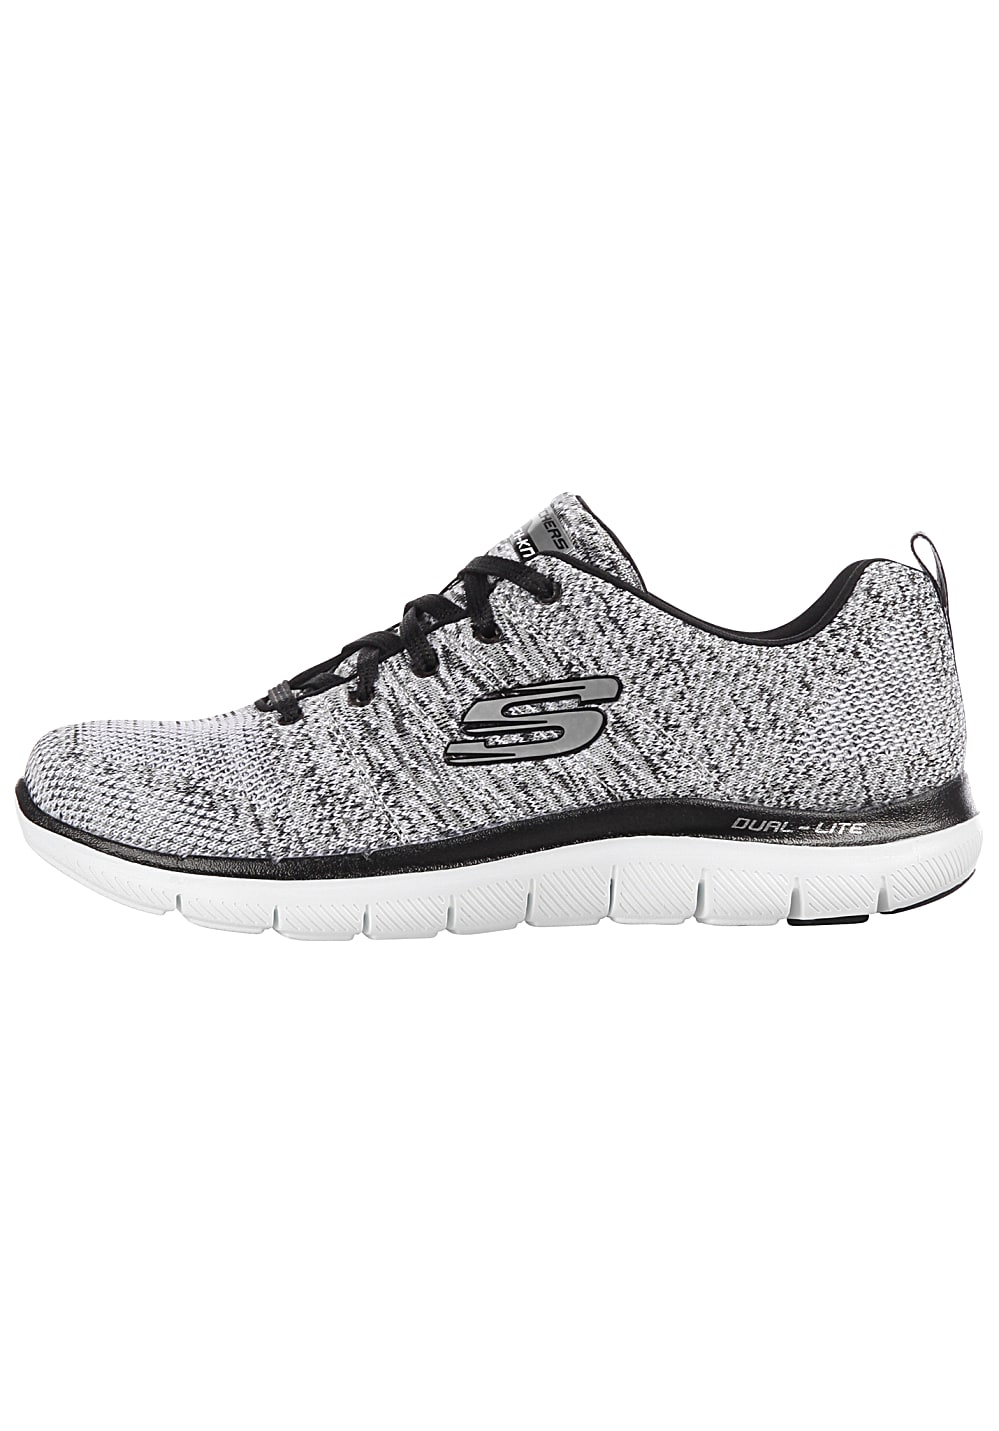 Skechers Flex Appeal 2.0 High Energy Baskets pour Femme Gris